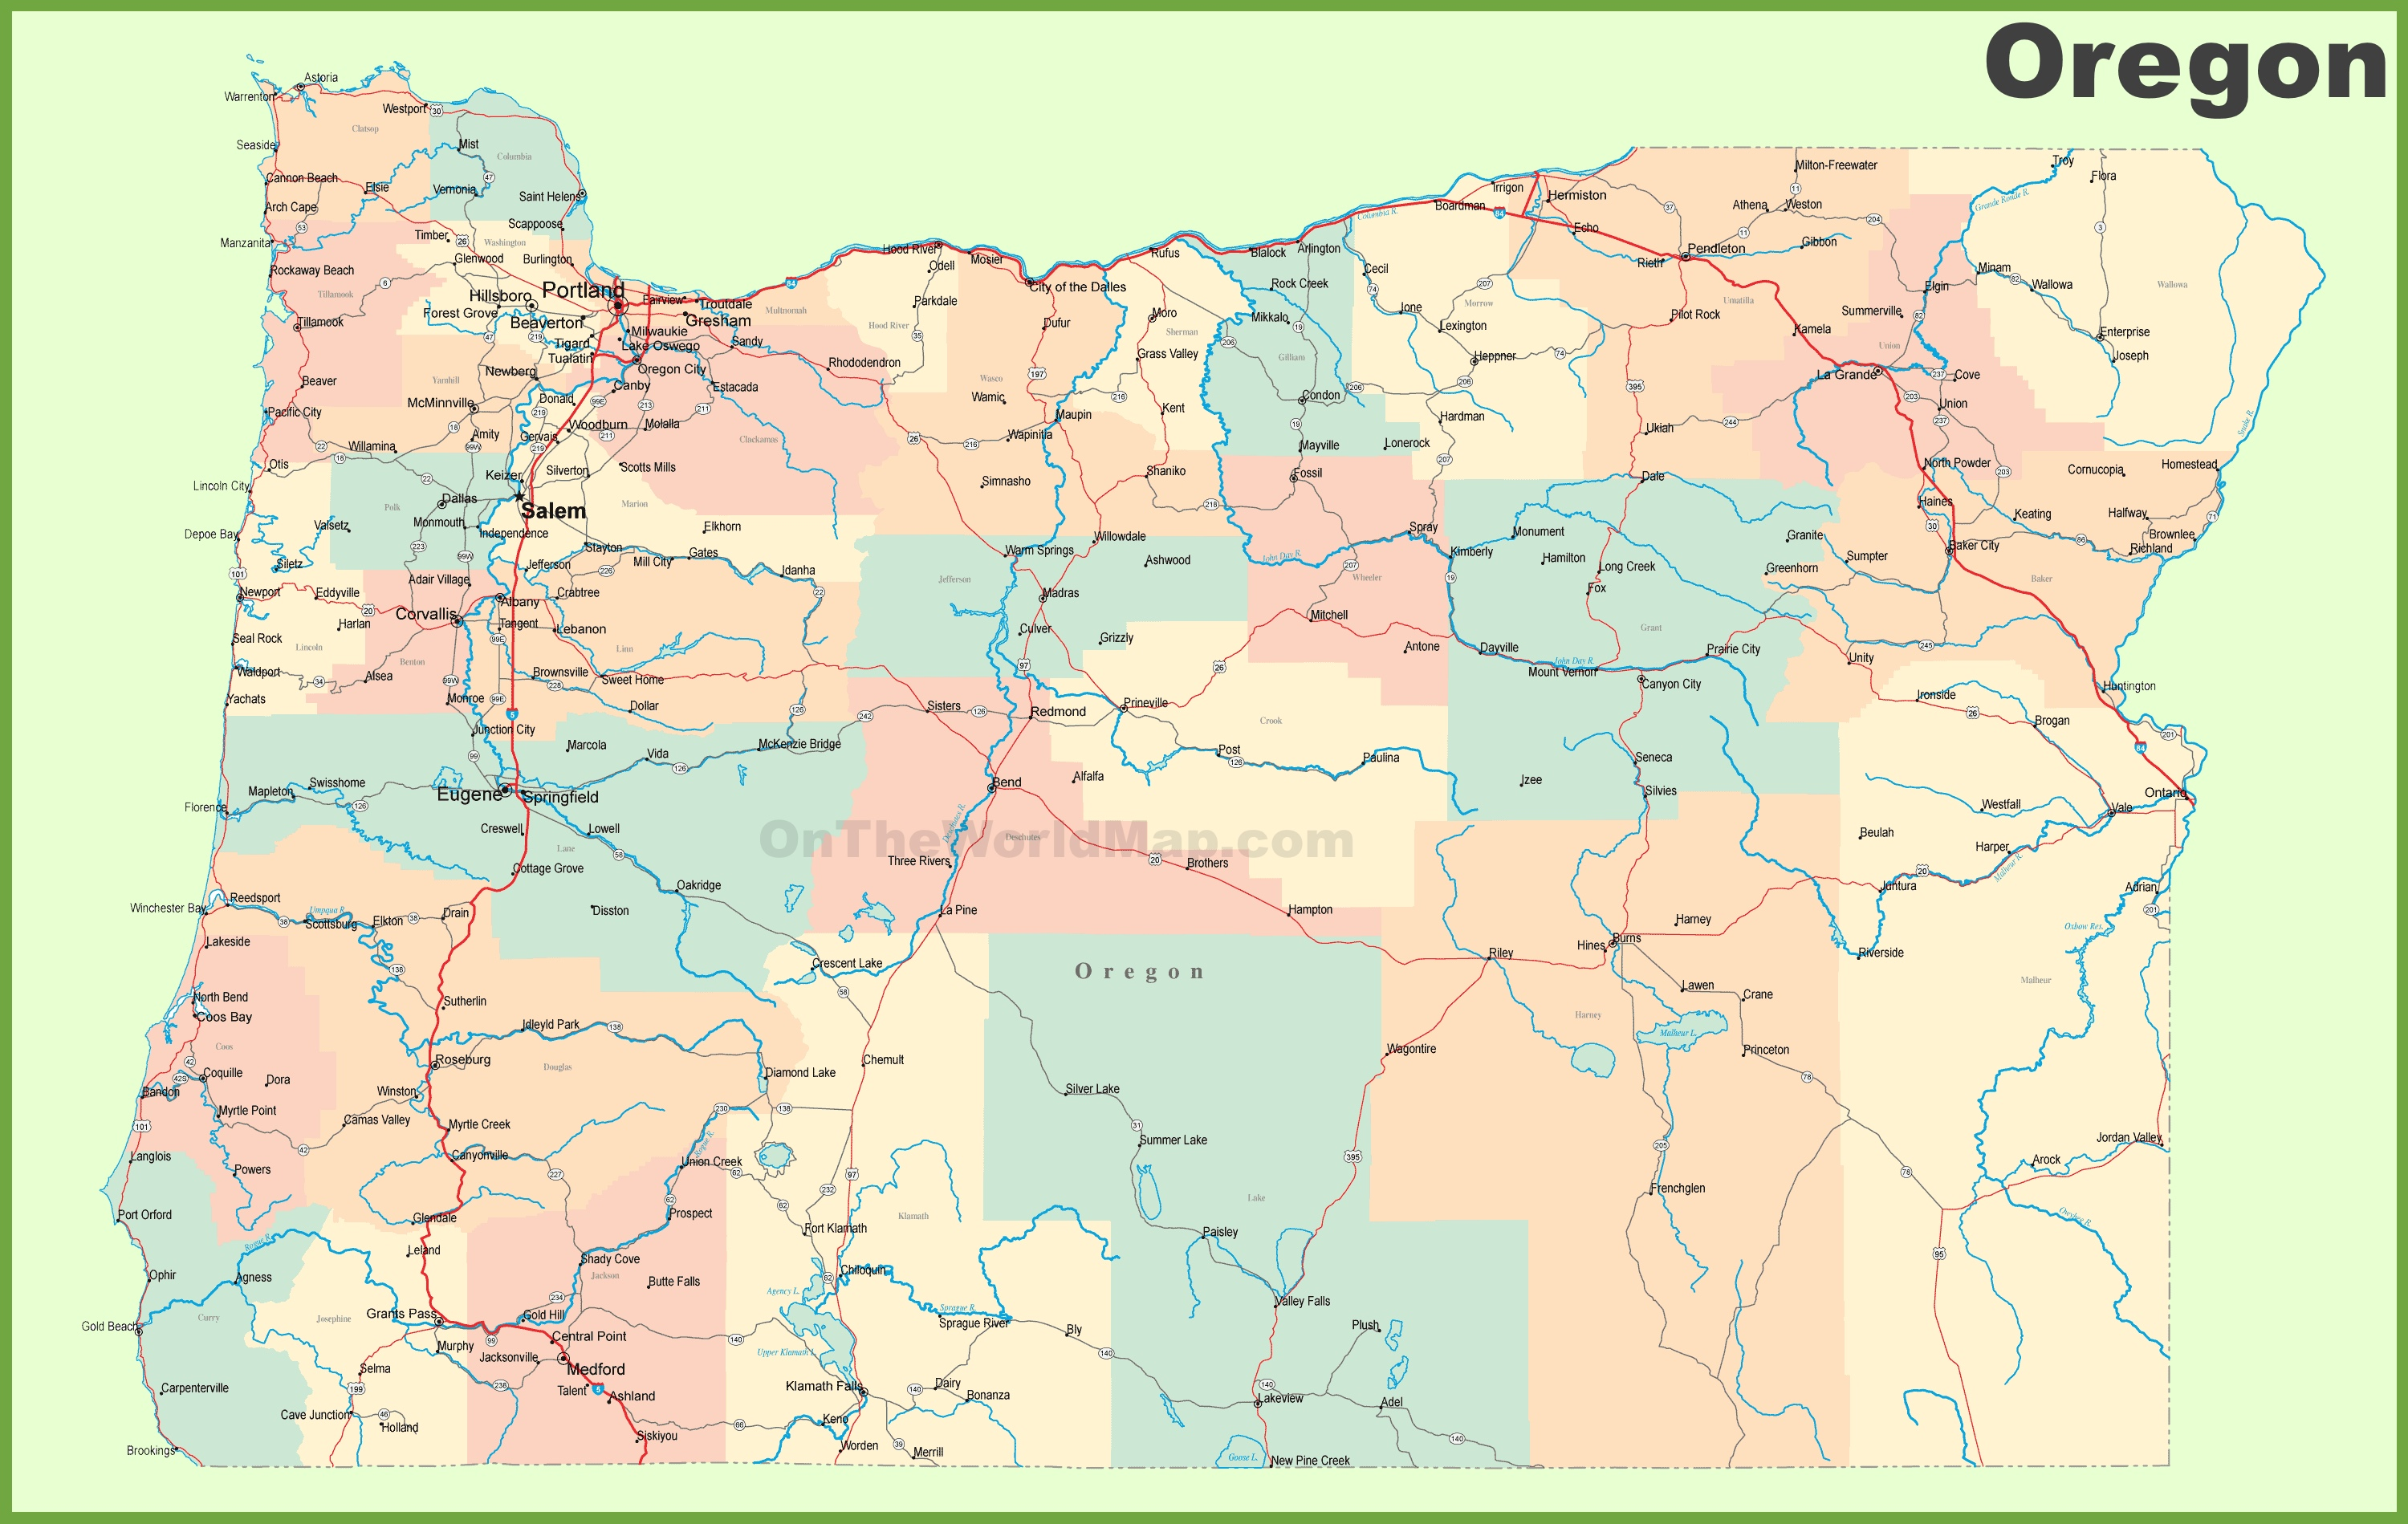 Road Map Of Oregon With Cities - Map of colorado ski resorts and cities